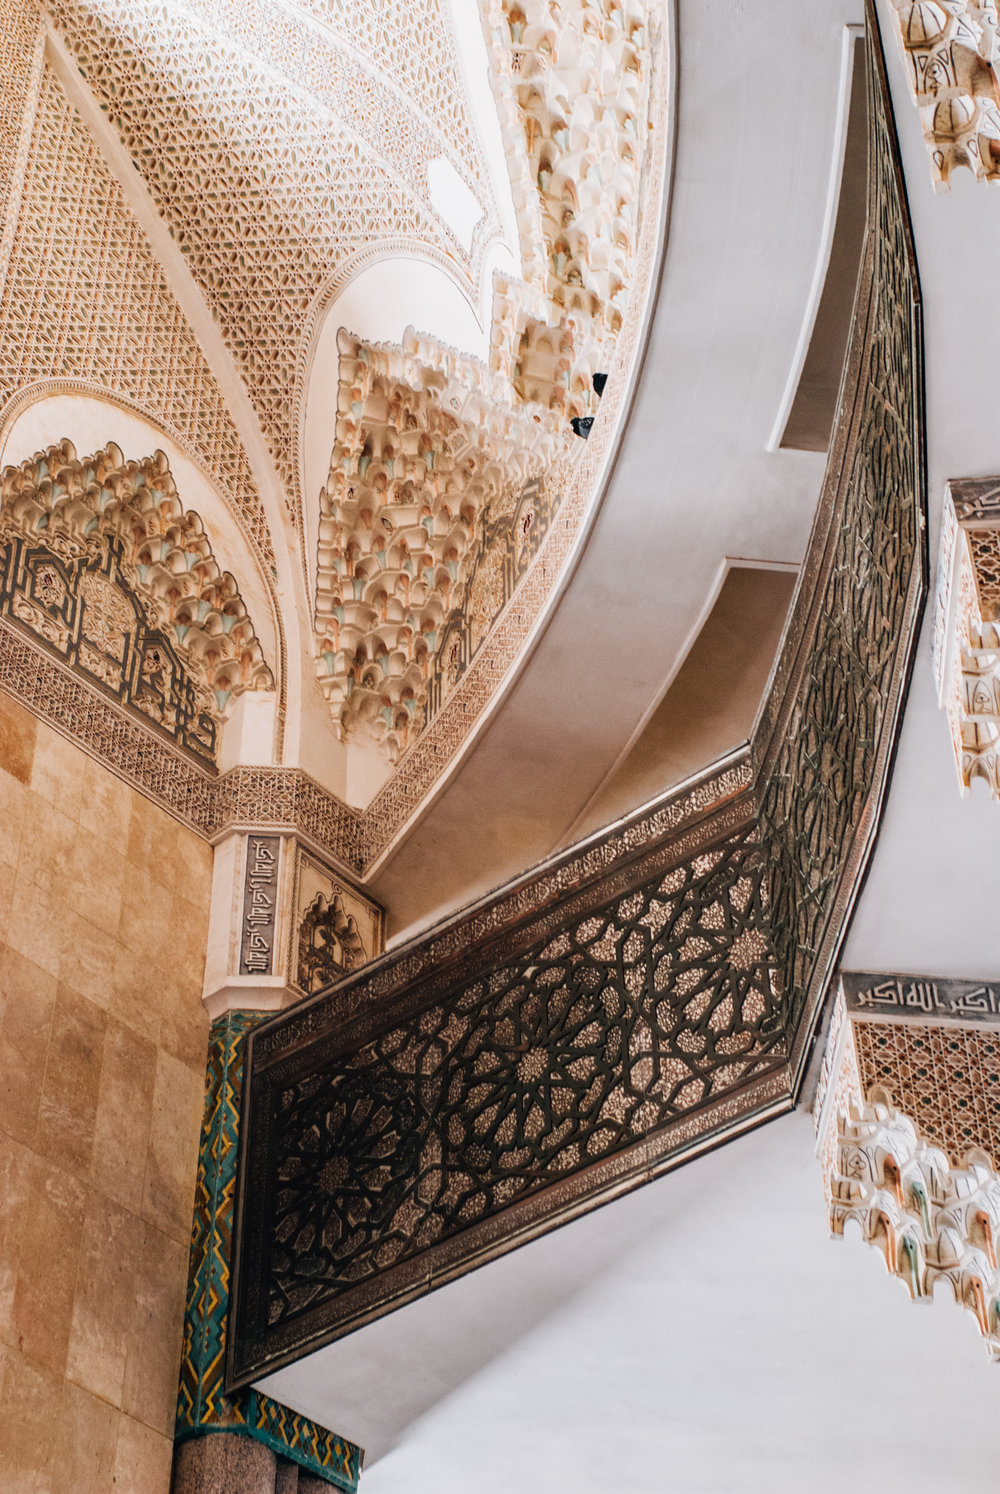 Fes Morocco Architecture Design Toronto Travel Photographers - Suech and Beck